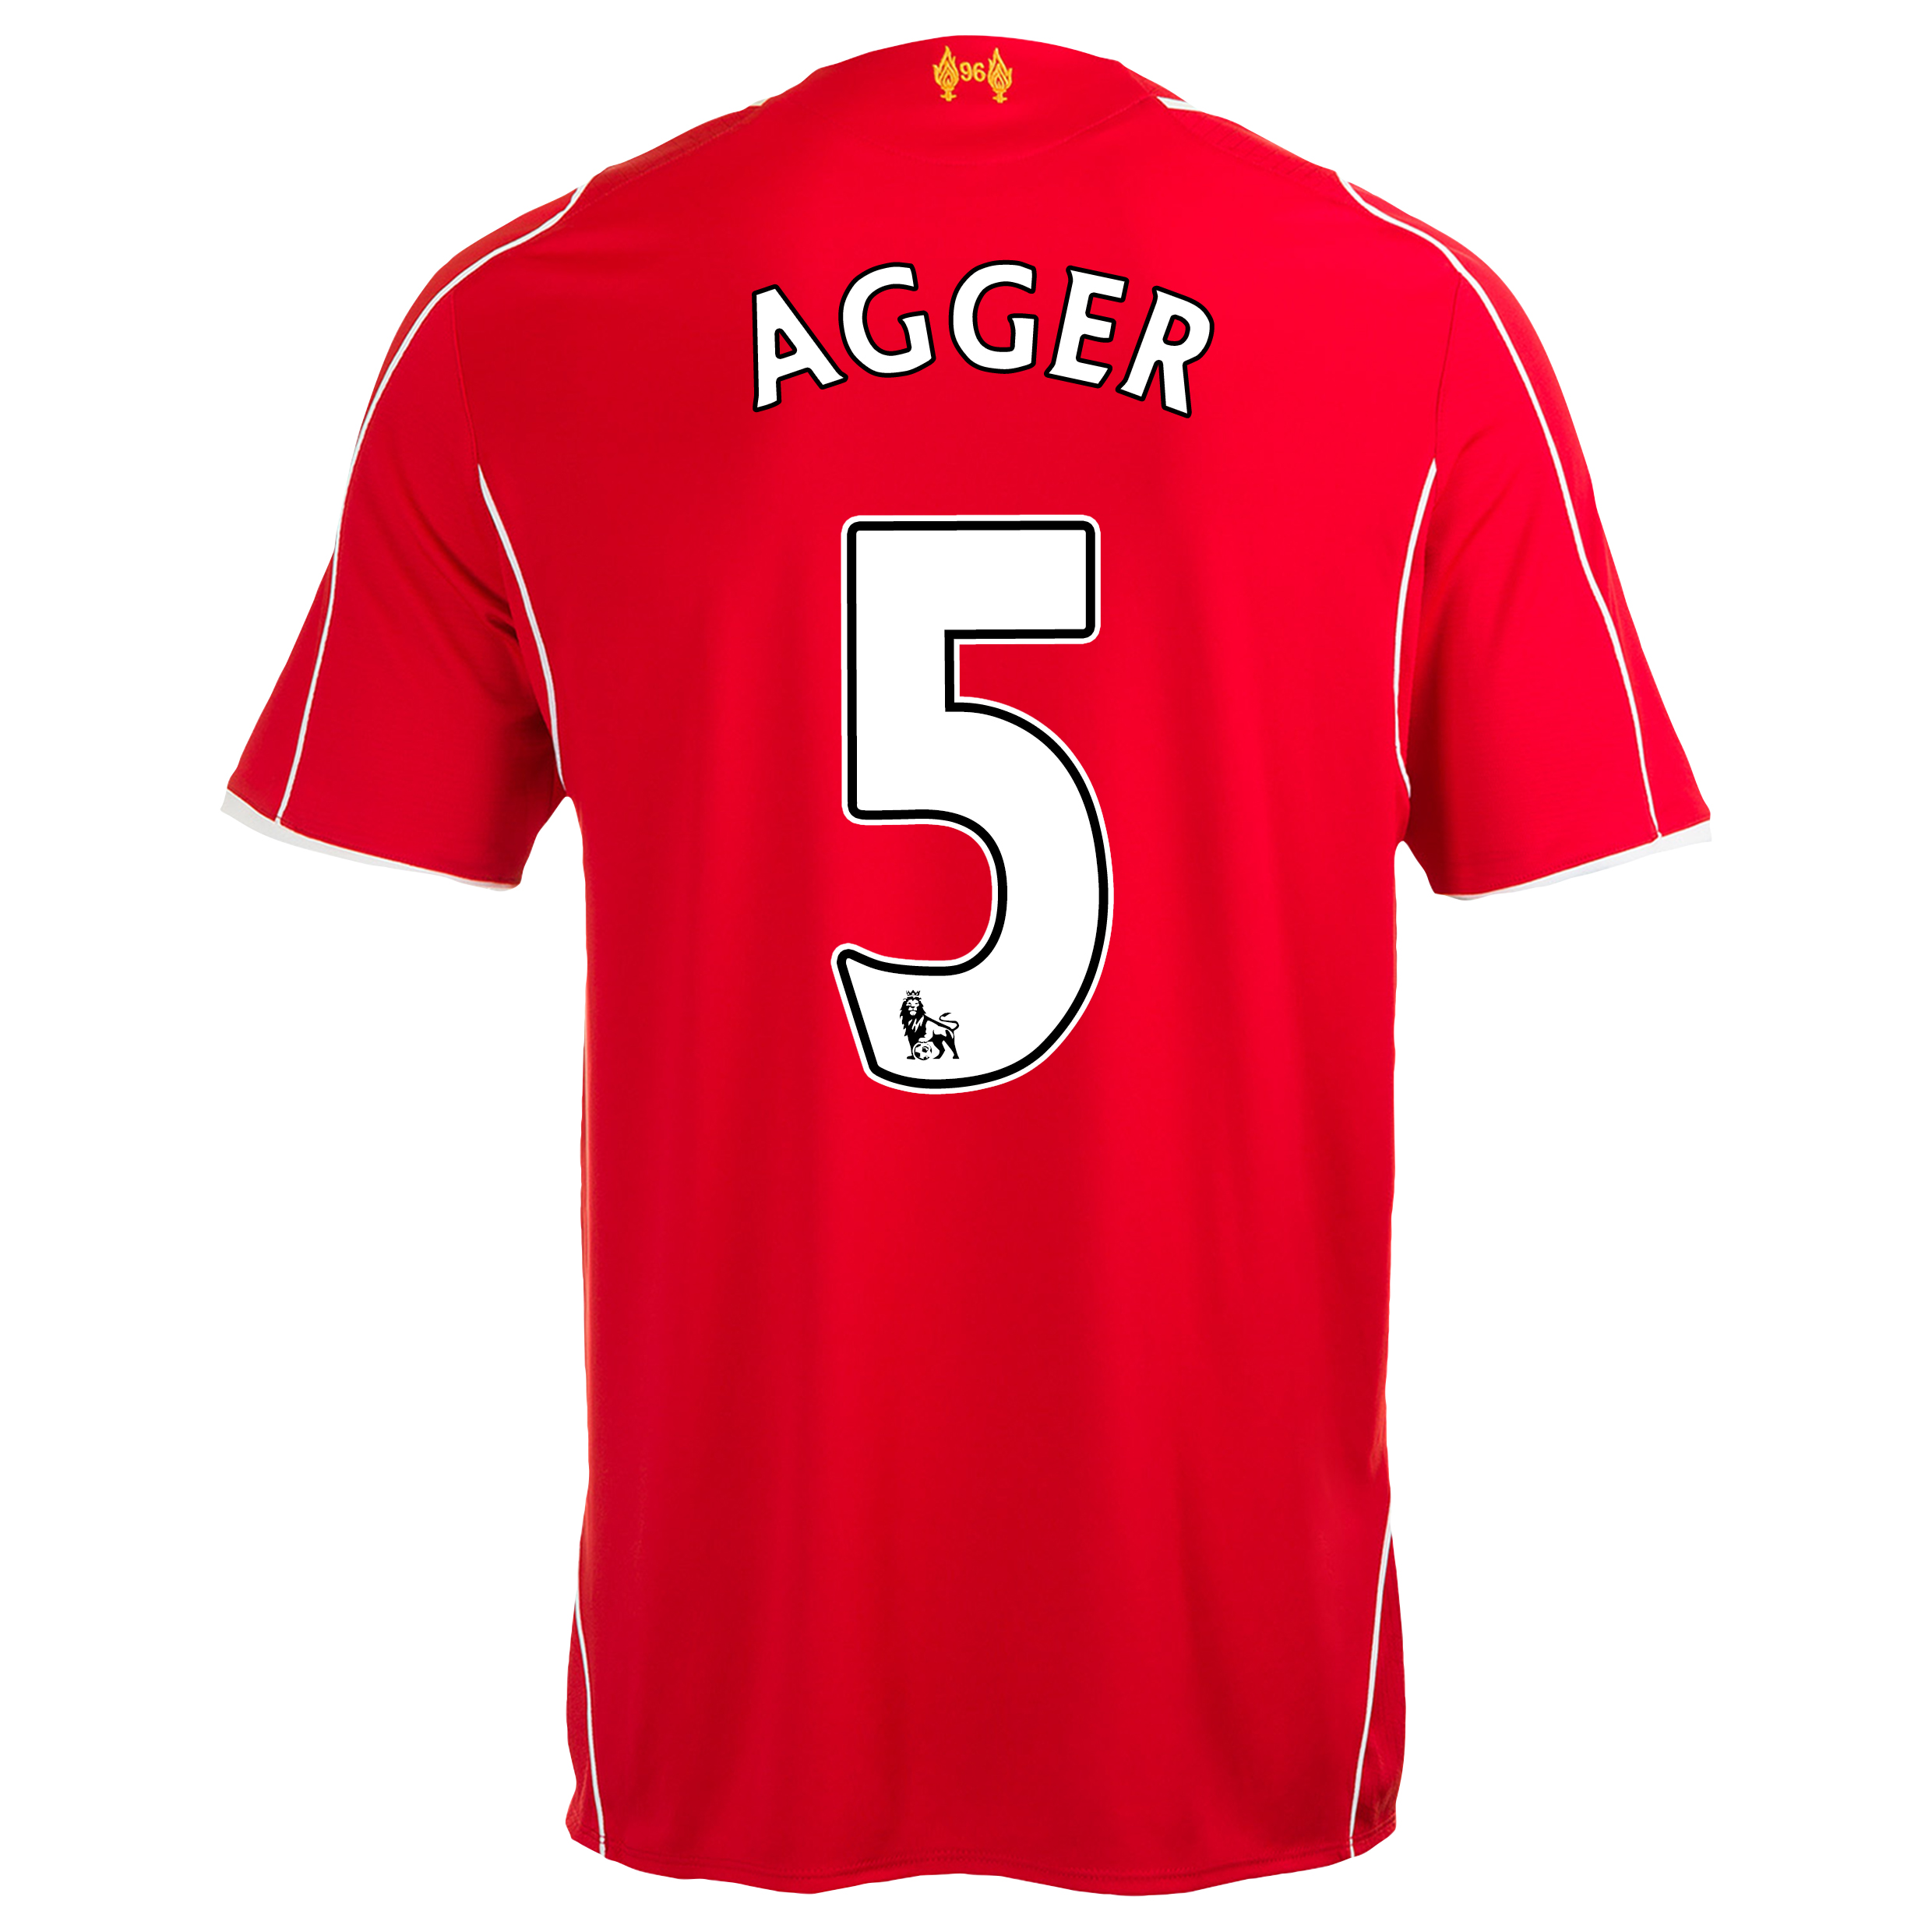 Liverpool Home Shirt 2014/15 Red with Agger 5 printing